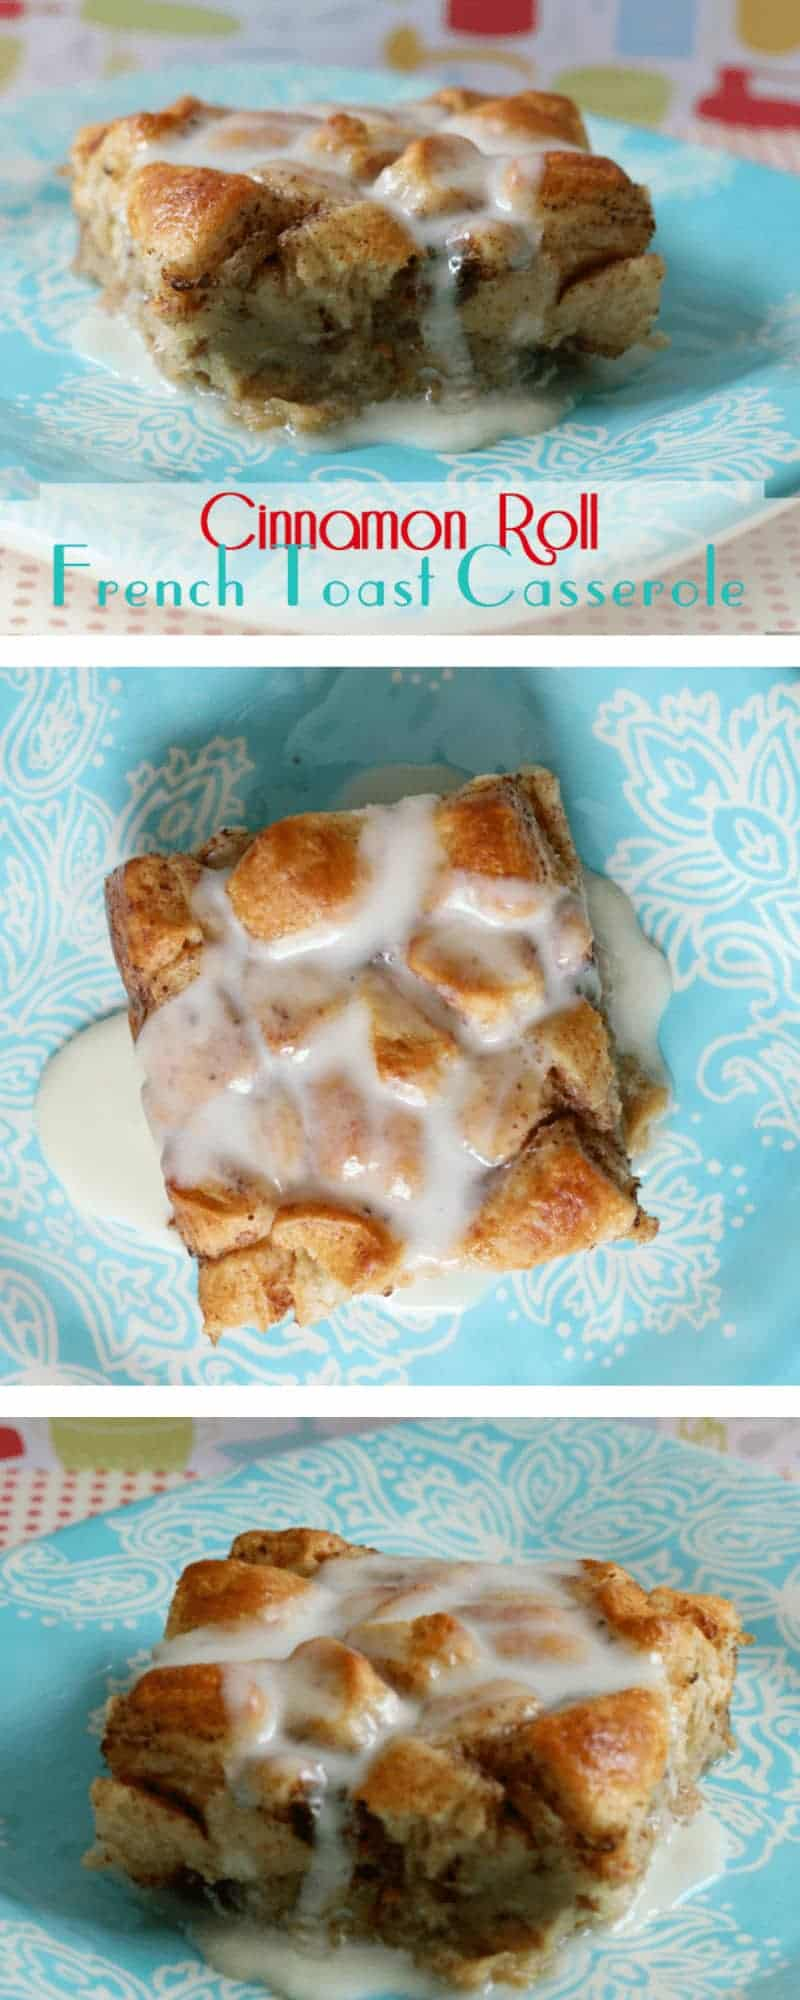 Collage view, three photos of Cinnamon Roll French Toast Casserole ready for serving on a blue and white boho style plate